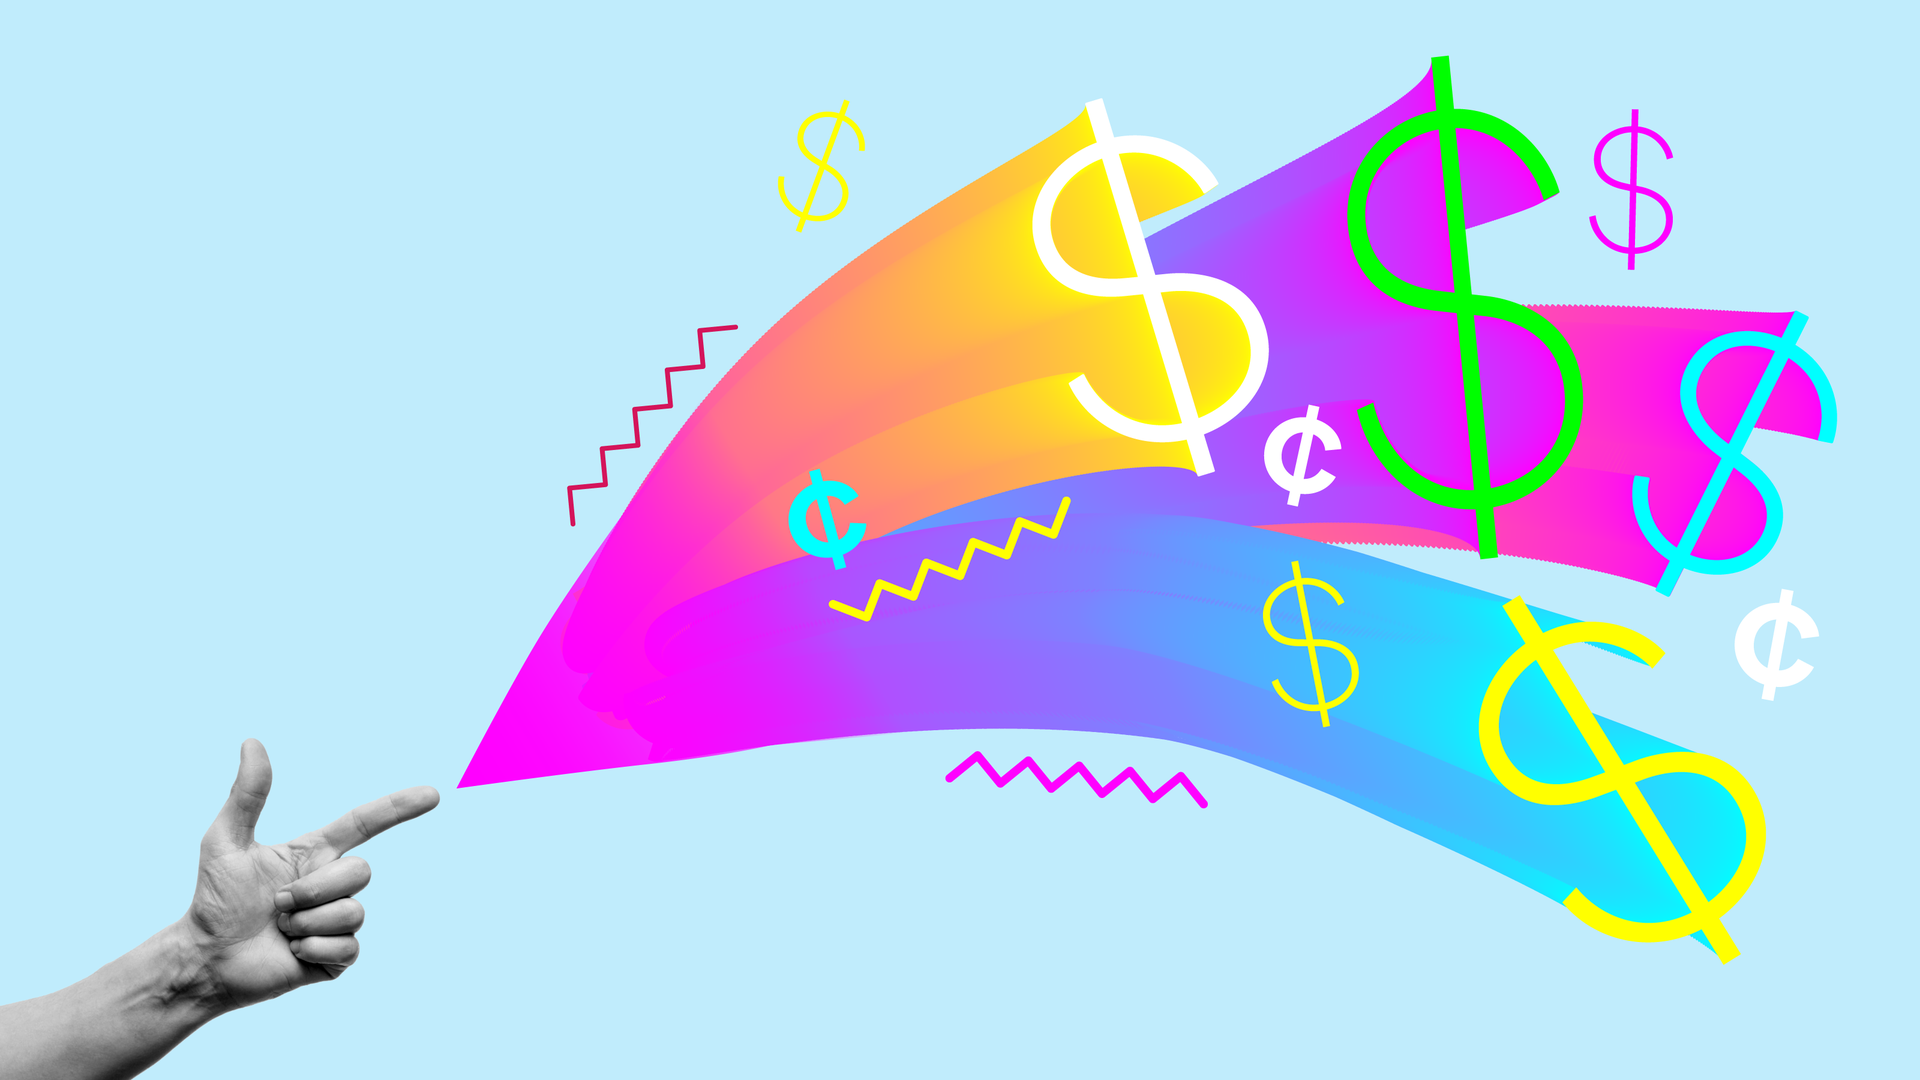 Illustration of money signs shooting out of a hand to symbolize venture capital.